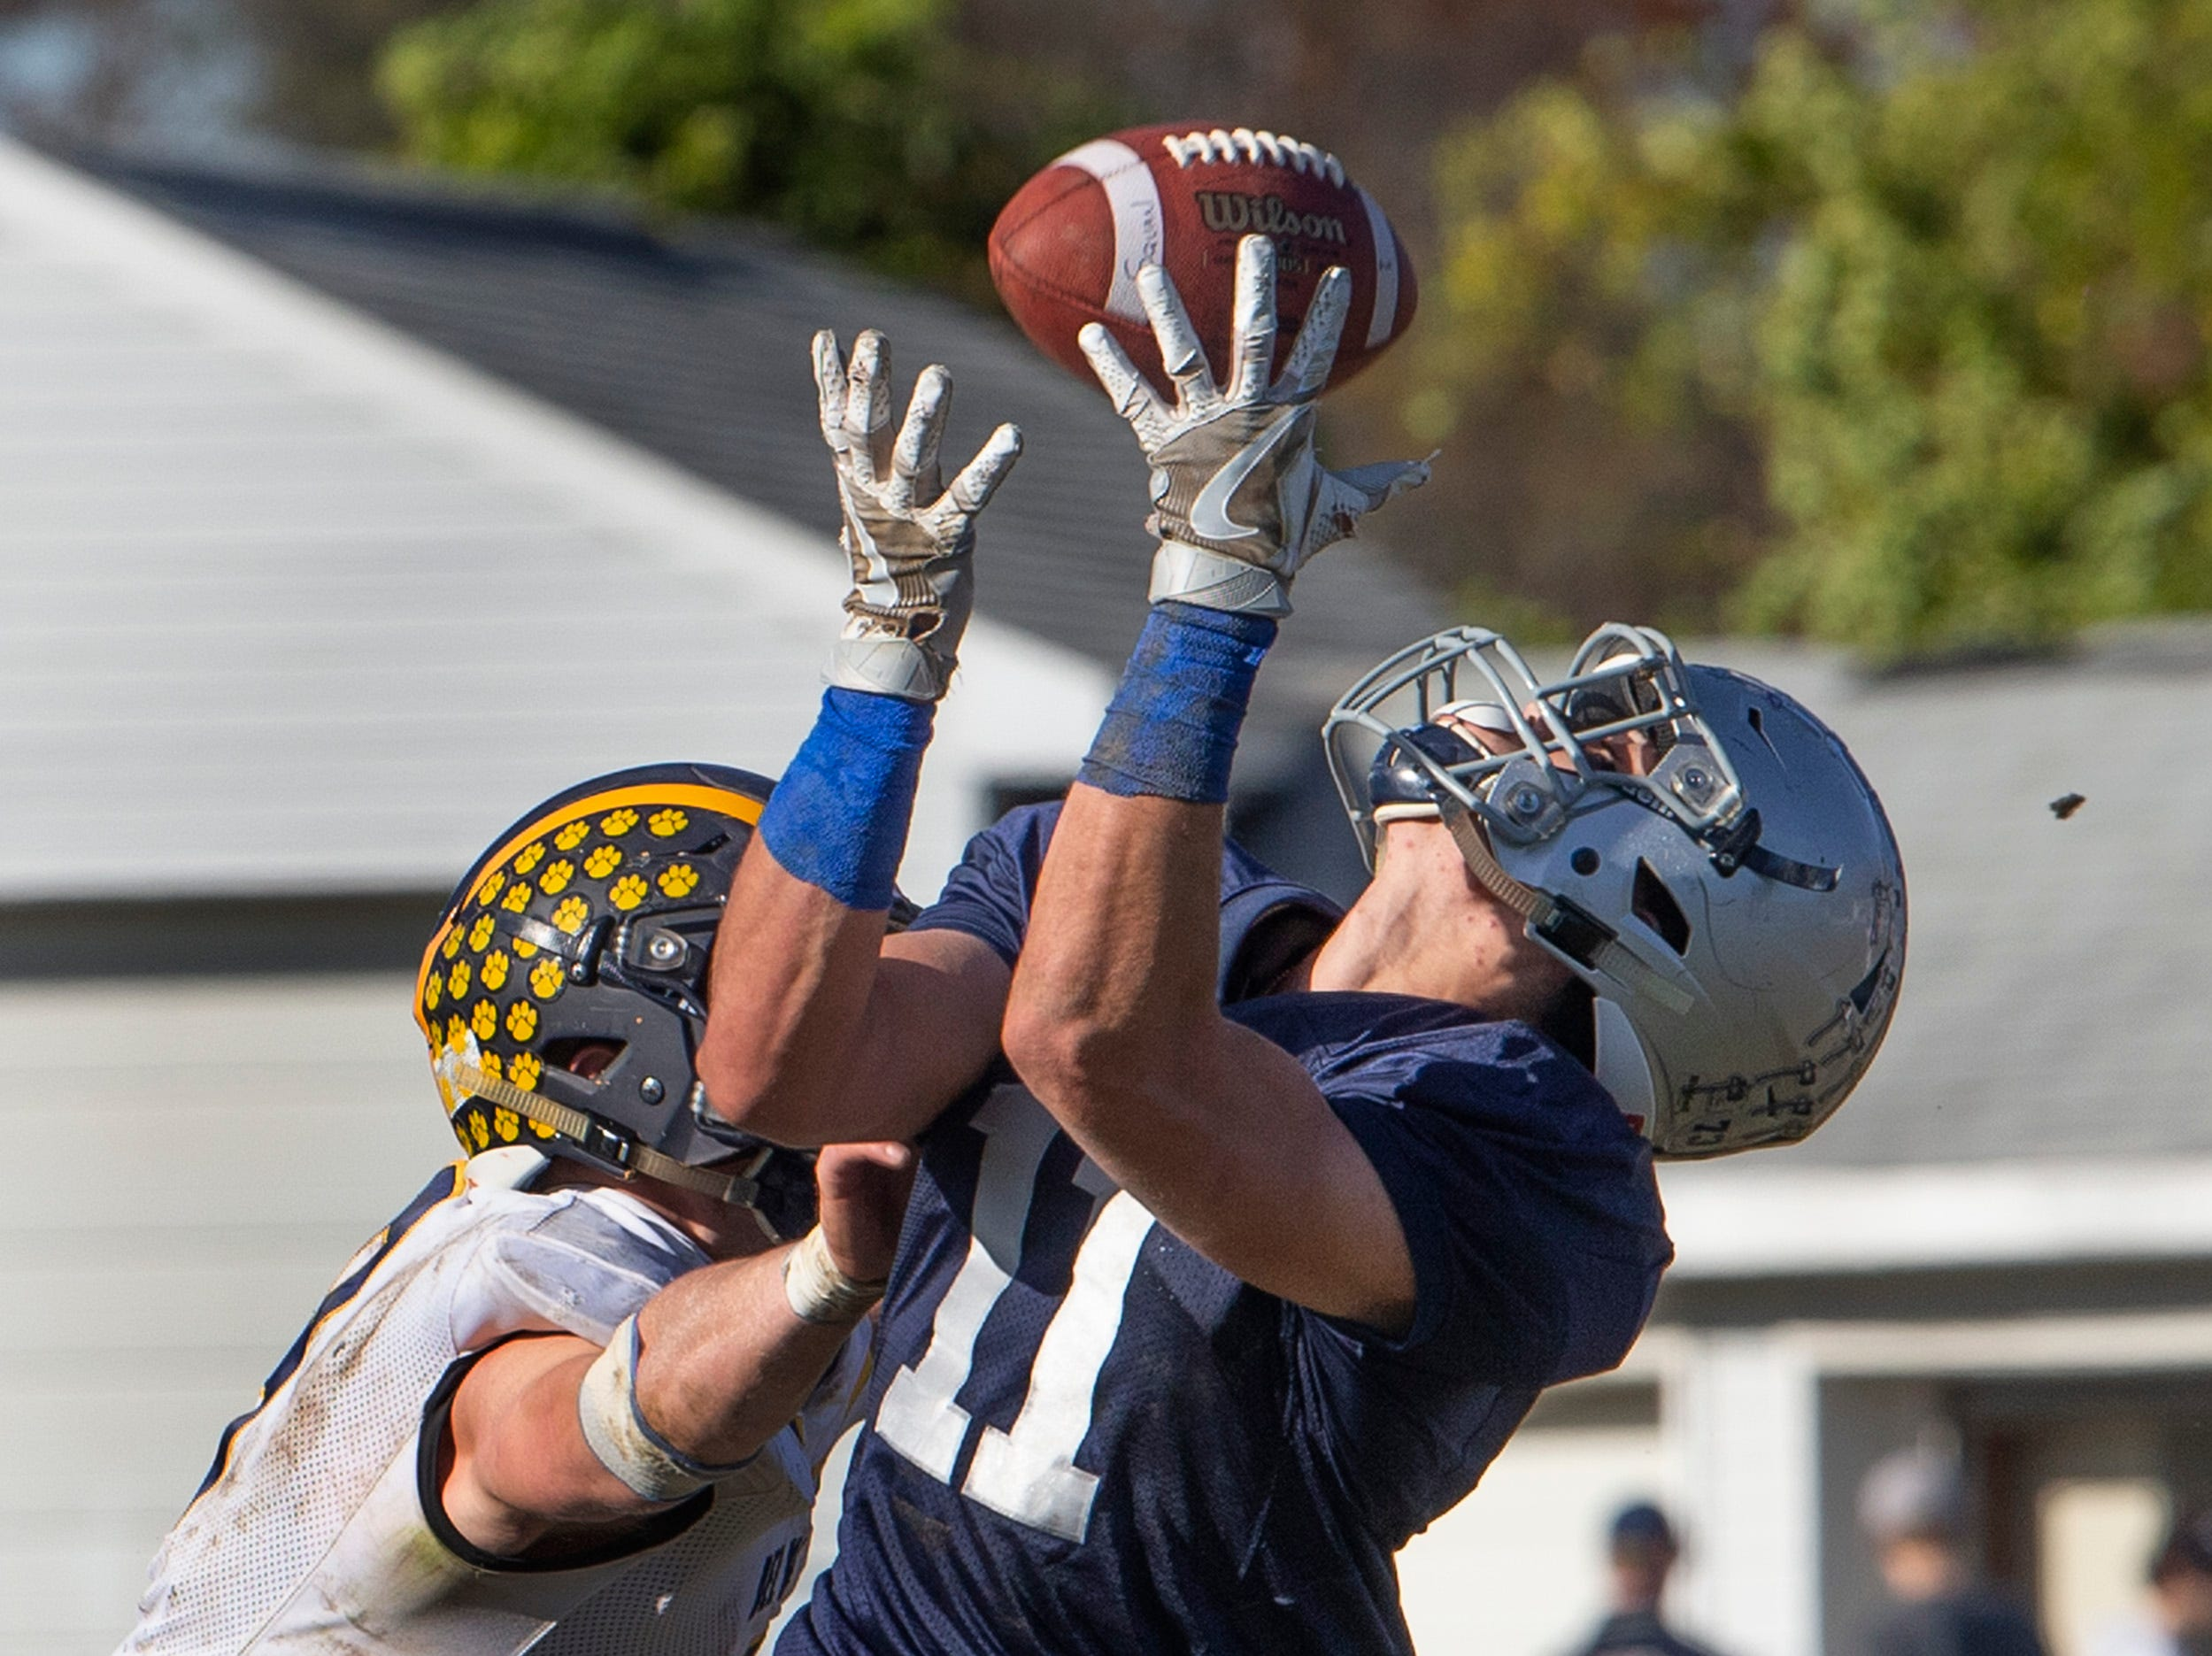 Manasquan's James Pendergist pulls in a long pass to set up Manasquan's last first half touchdown.  Manasquan Football buries Delaware Valley in NJSIAA opening round game in Manasquan NJ. On November 3, 2018.